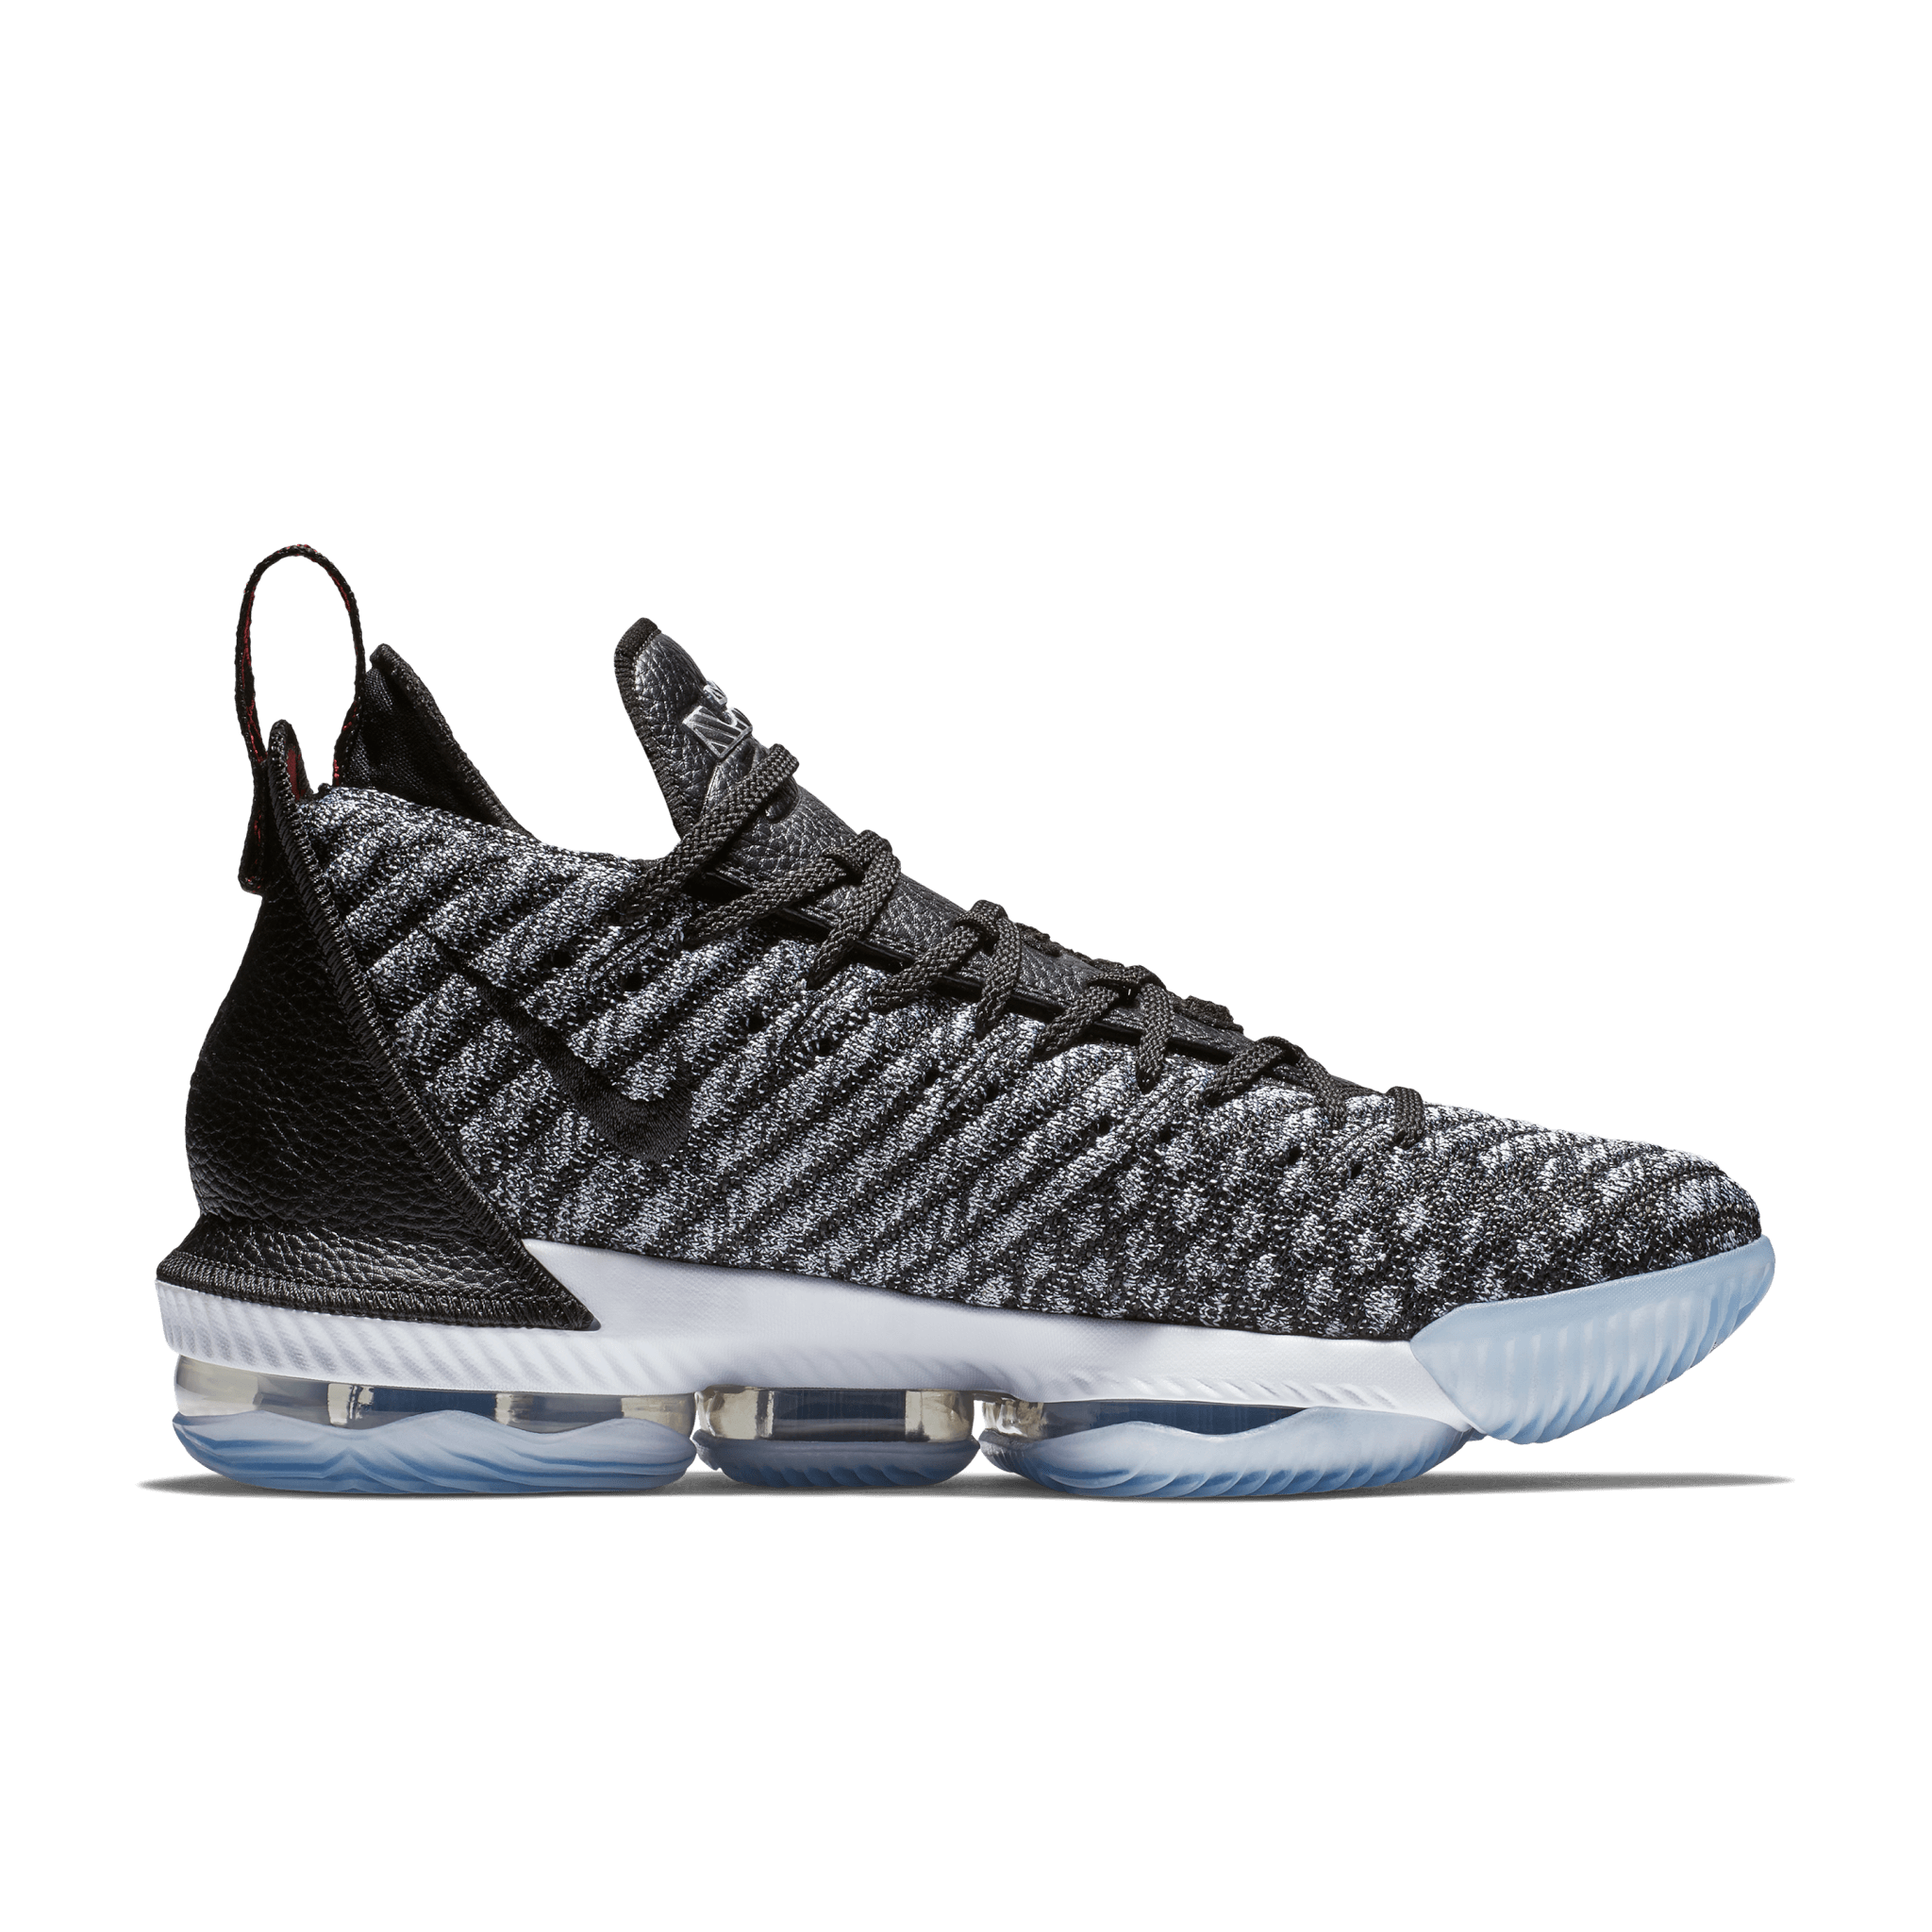 2129a985506 Nike Lebron 16 Performance Review